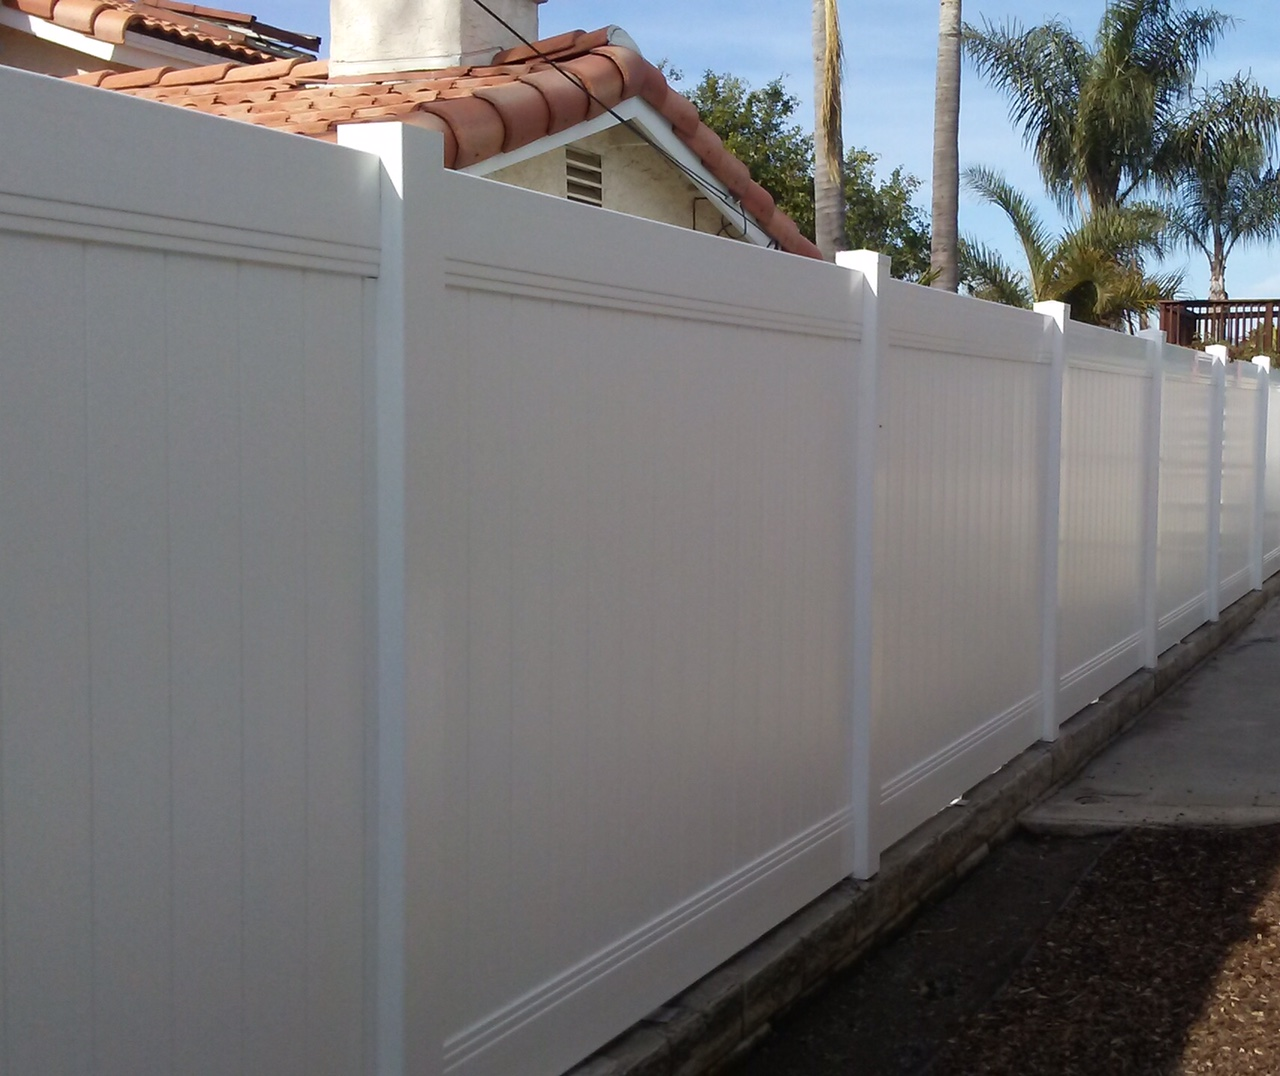 6' White Viny Privacy